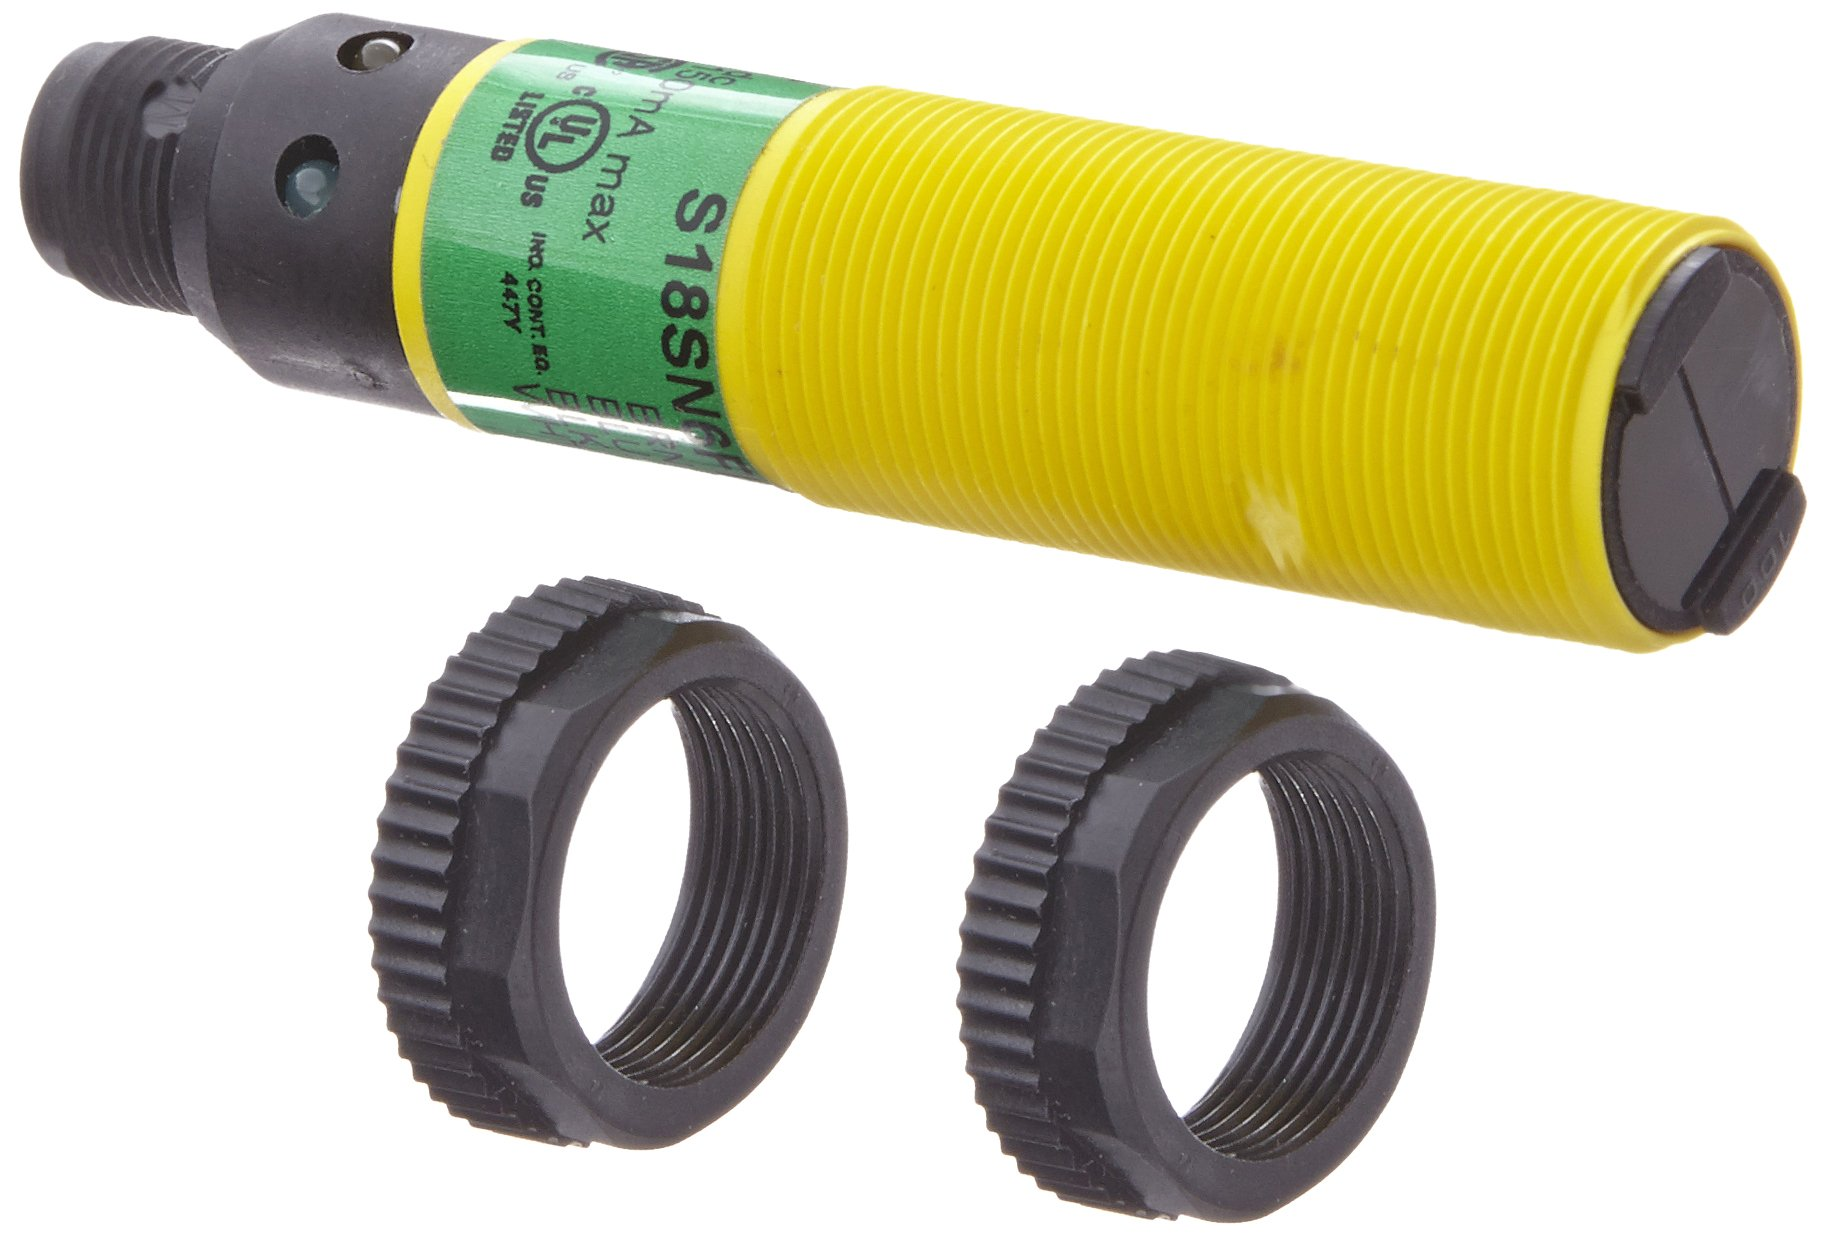 Banner S18SN6FF100Q EZ Beam Barrel-Style Sensor, Fixed-Field Background-Suppression Mode, 4-Pin Euro-Style QD Connector, Infrared LED, 10-30 VDC Supply Voltage, NPN Output, 100 mm Sensing Range